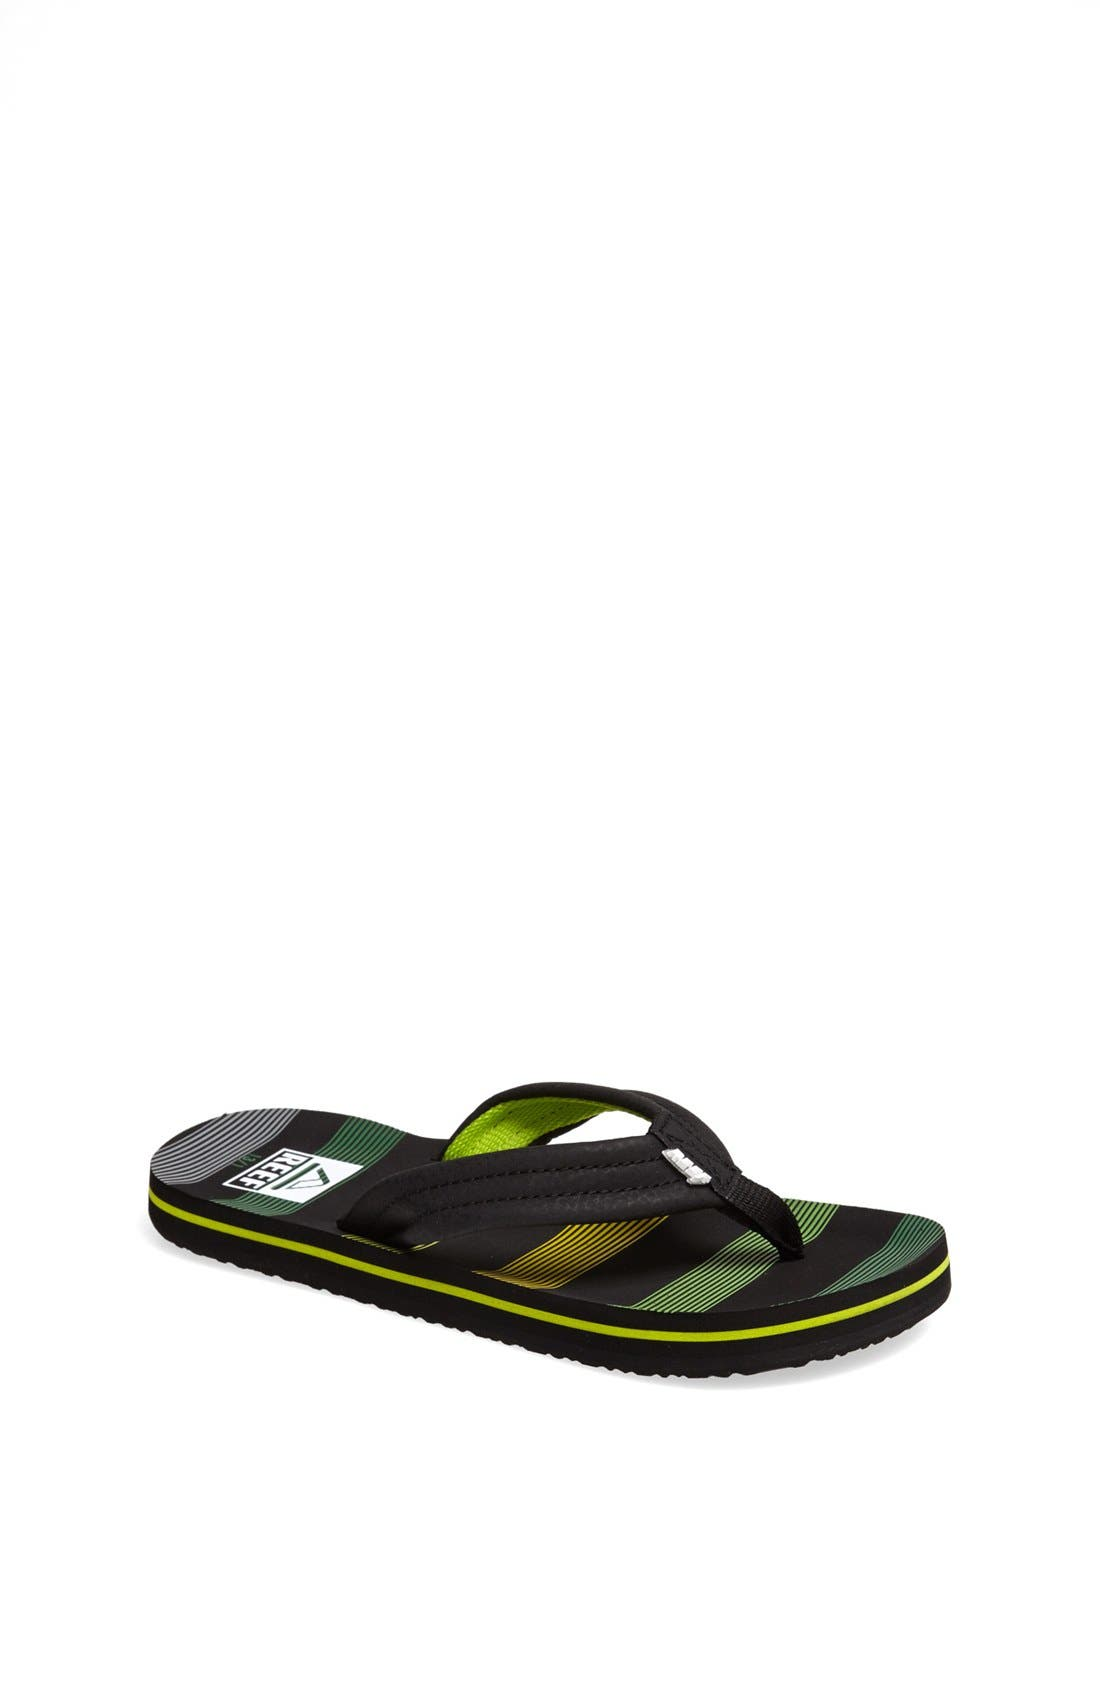 Main Image - Reef 'Ahi' Sandal (Baby, Walker, Toddler, Little Kid & Big Kid)